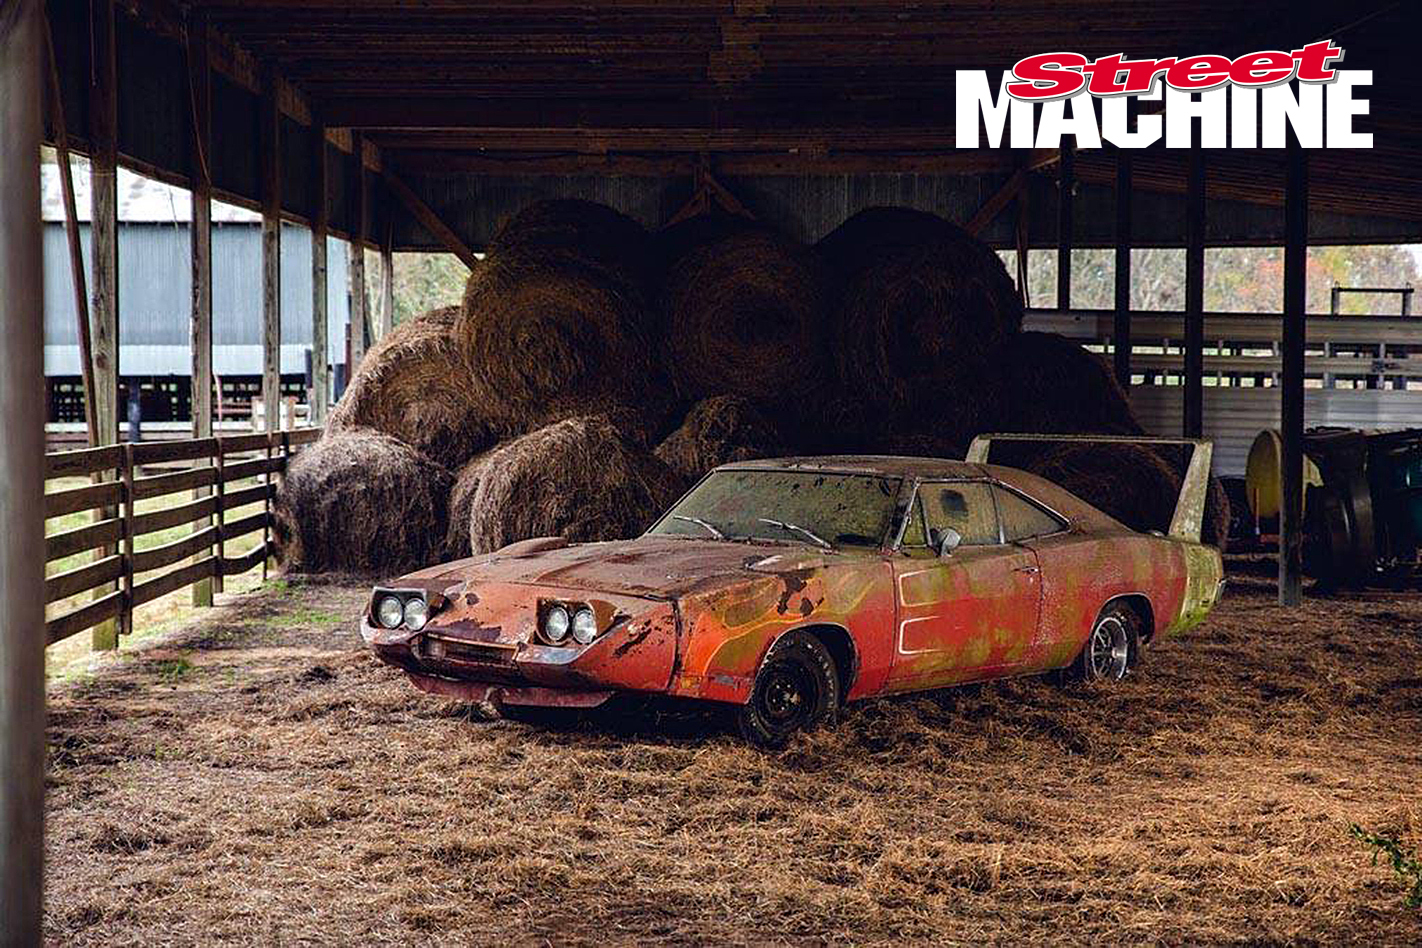 BARN FIND DODGE DAYTONA FOUND AND SOLD AT AUCTION